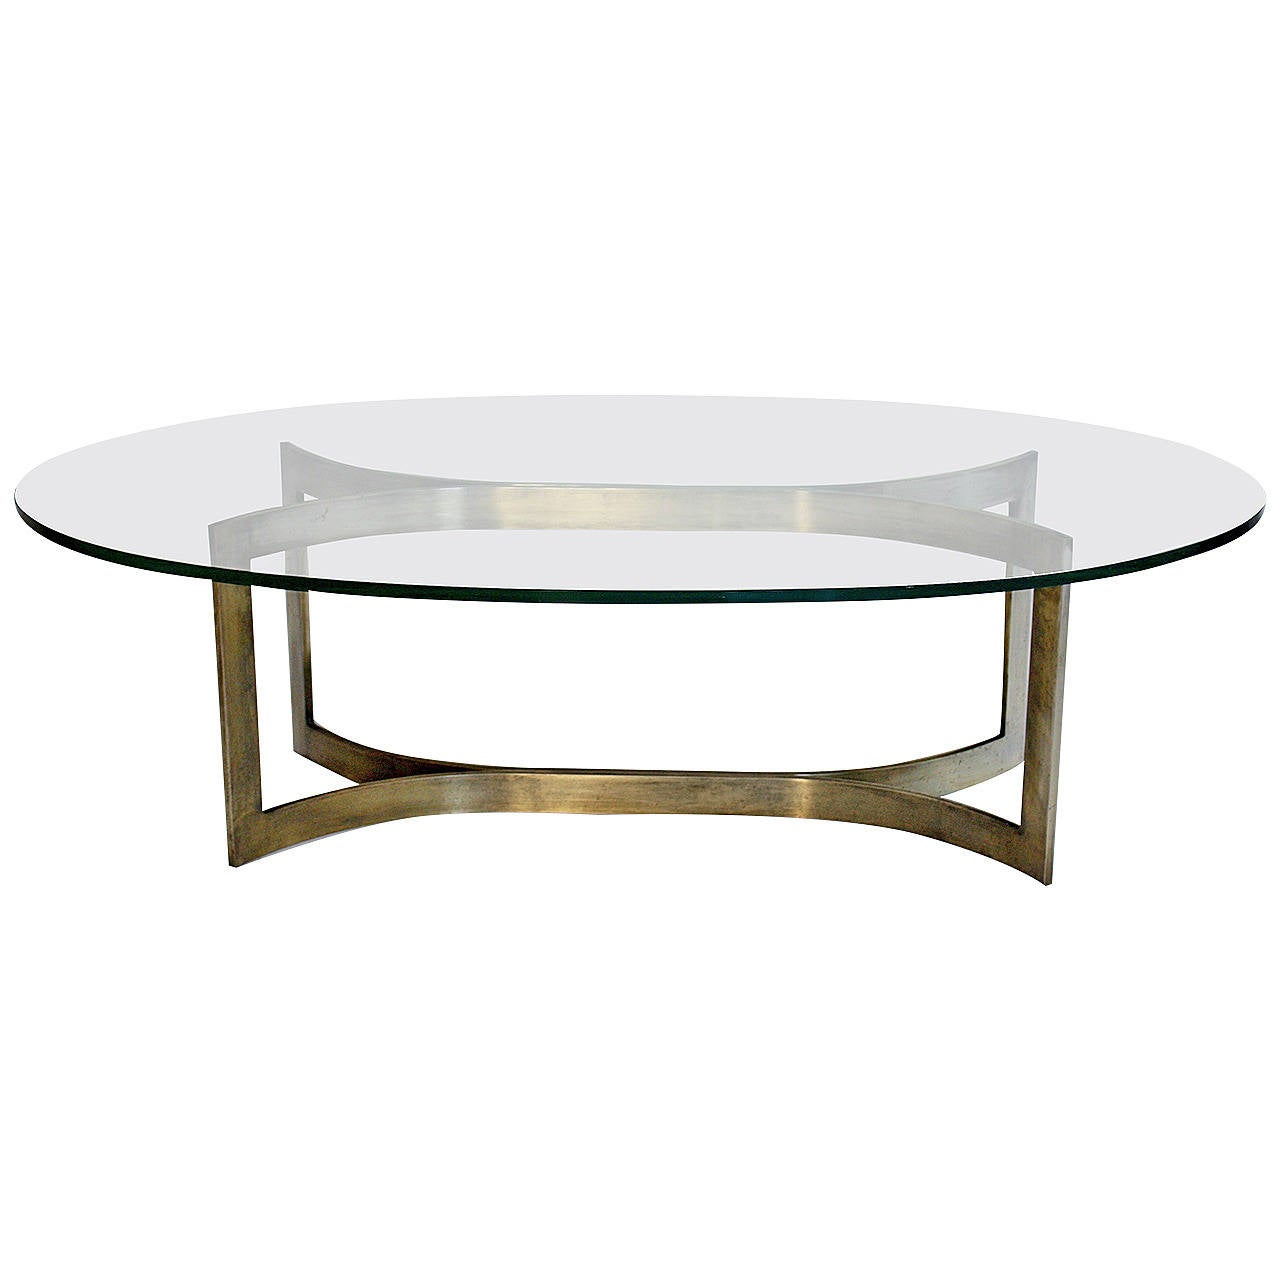 Baker bronze and glass oval cocktail table at 1stdibs for Contemporary oval coffee tables